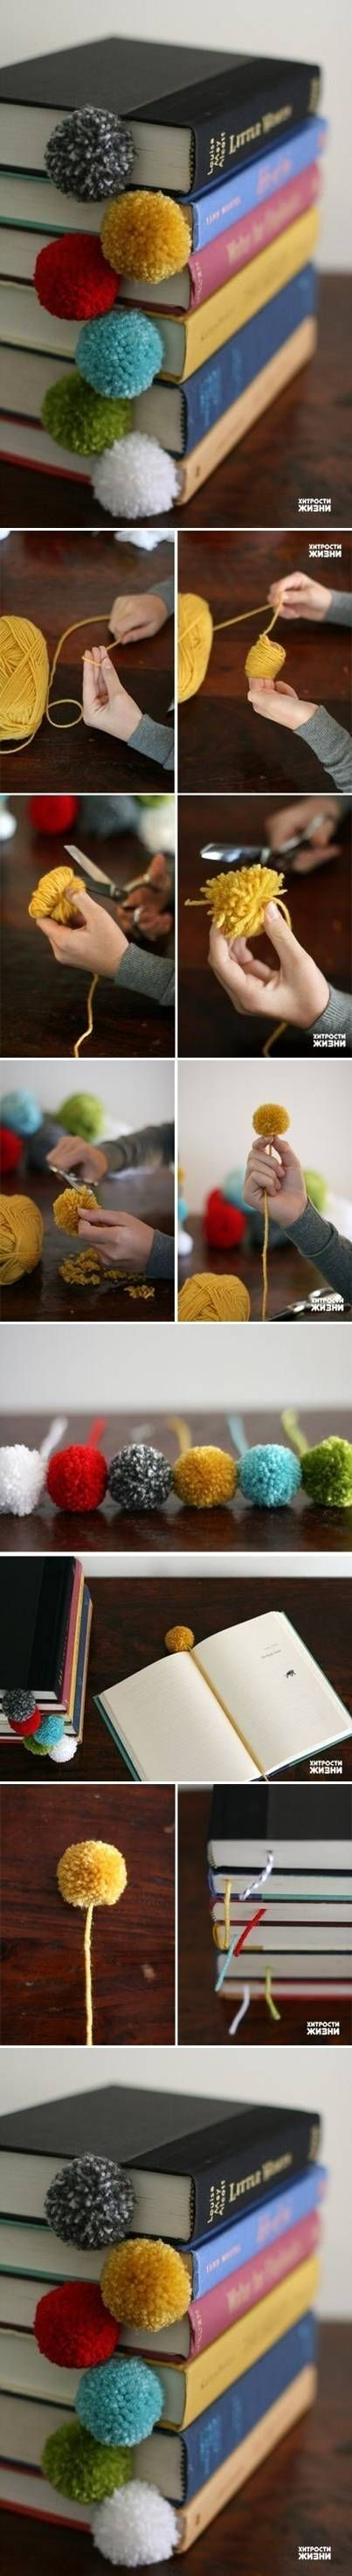 DIY Pom Pom Book Mark books diy craft crafts craft ideas diy ideas easy diy easy craft books diy